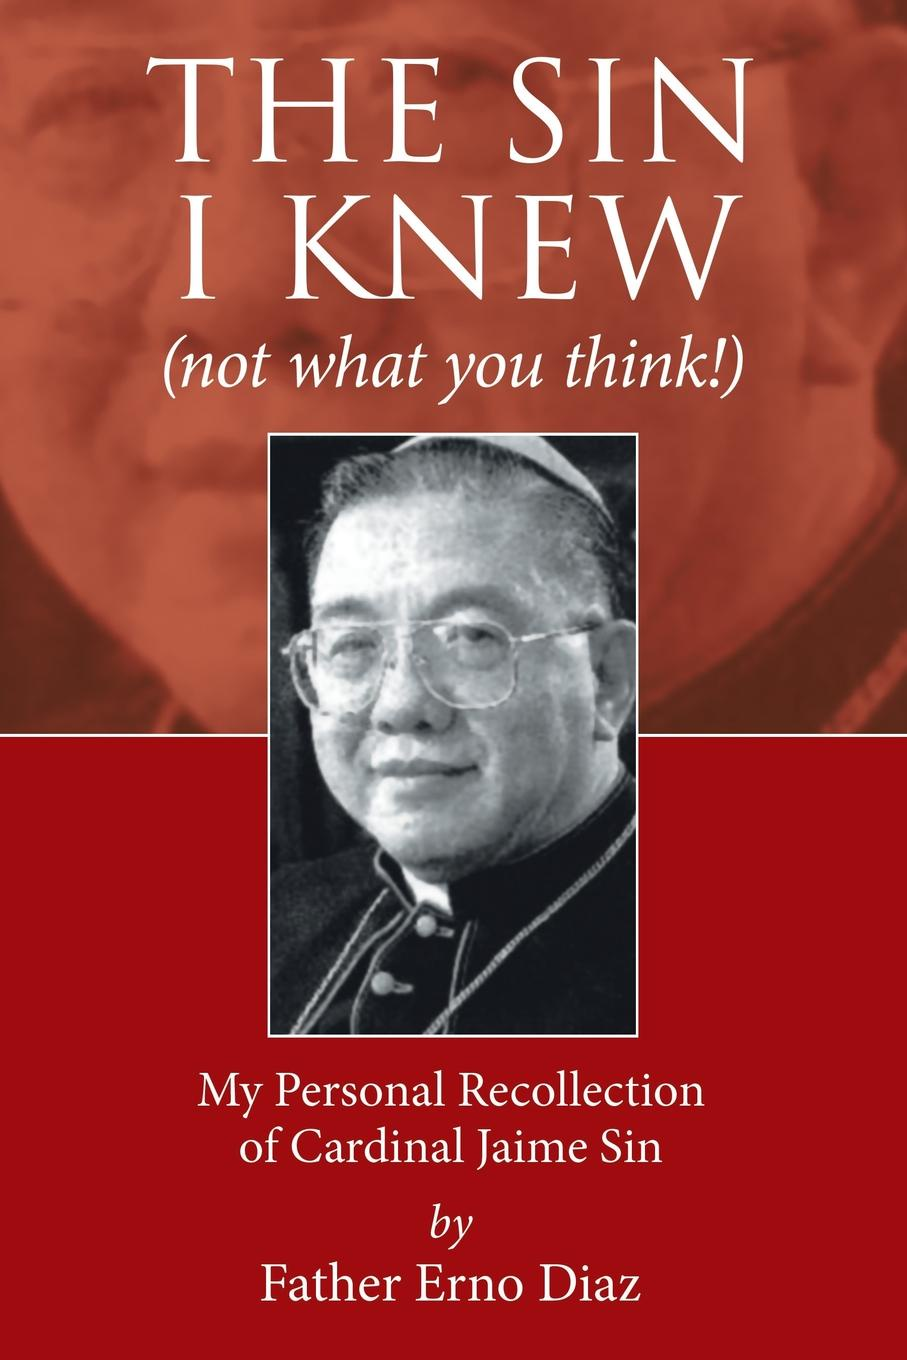 Father Erno Diaz The Sin I Knew (not what you think!). My Personal Recollection of Cardinal Jaime Sin